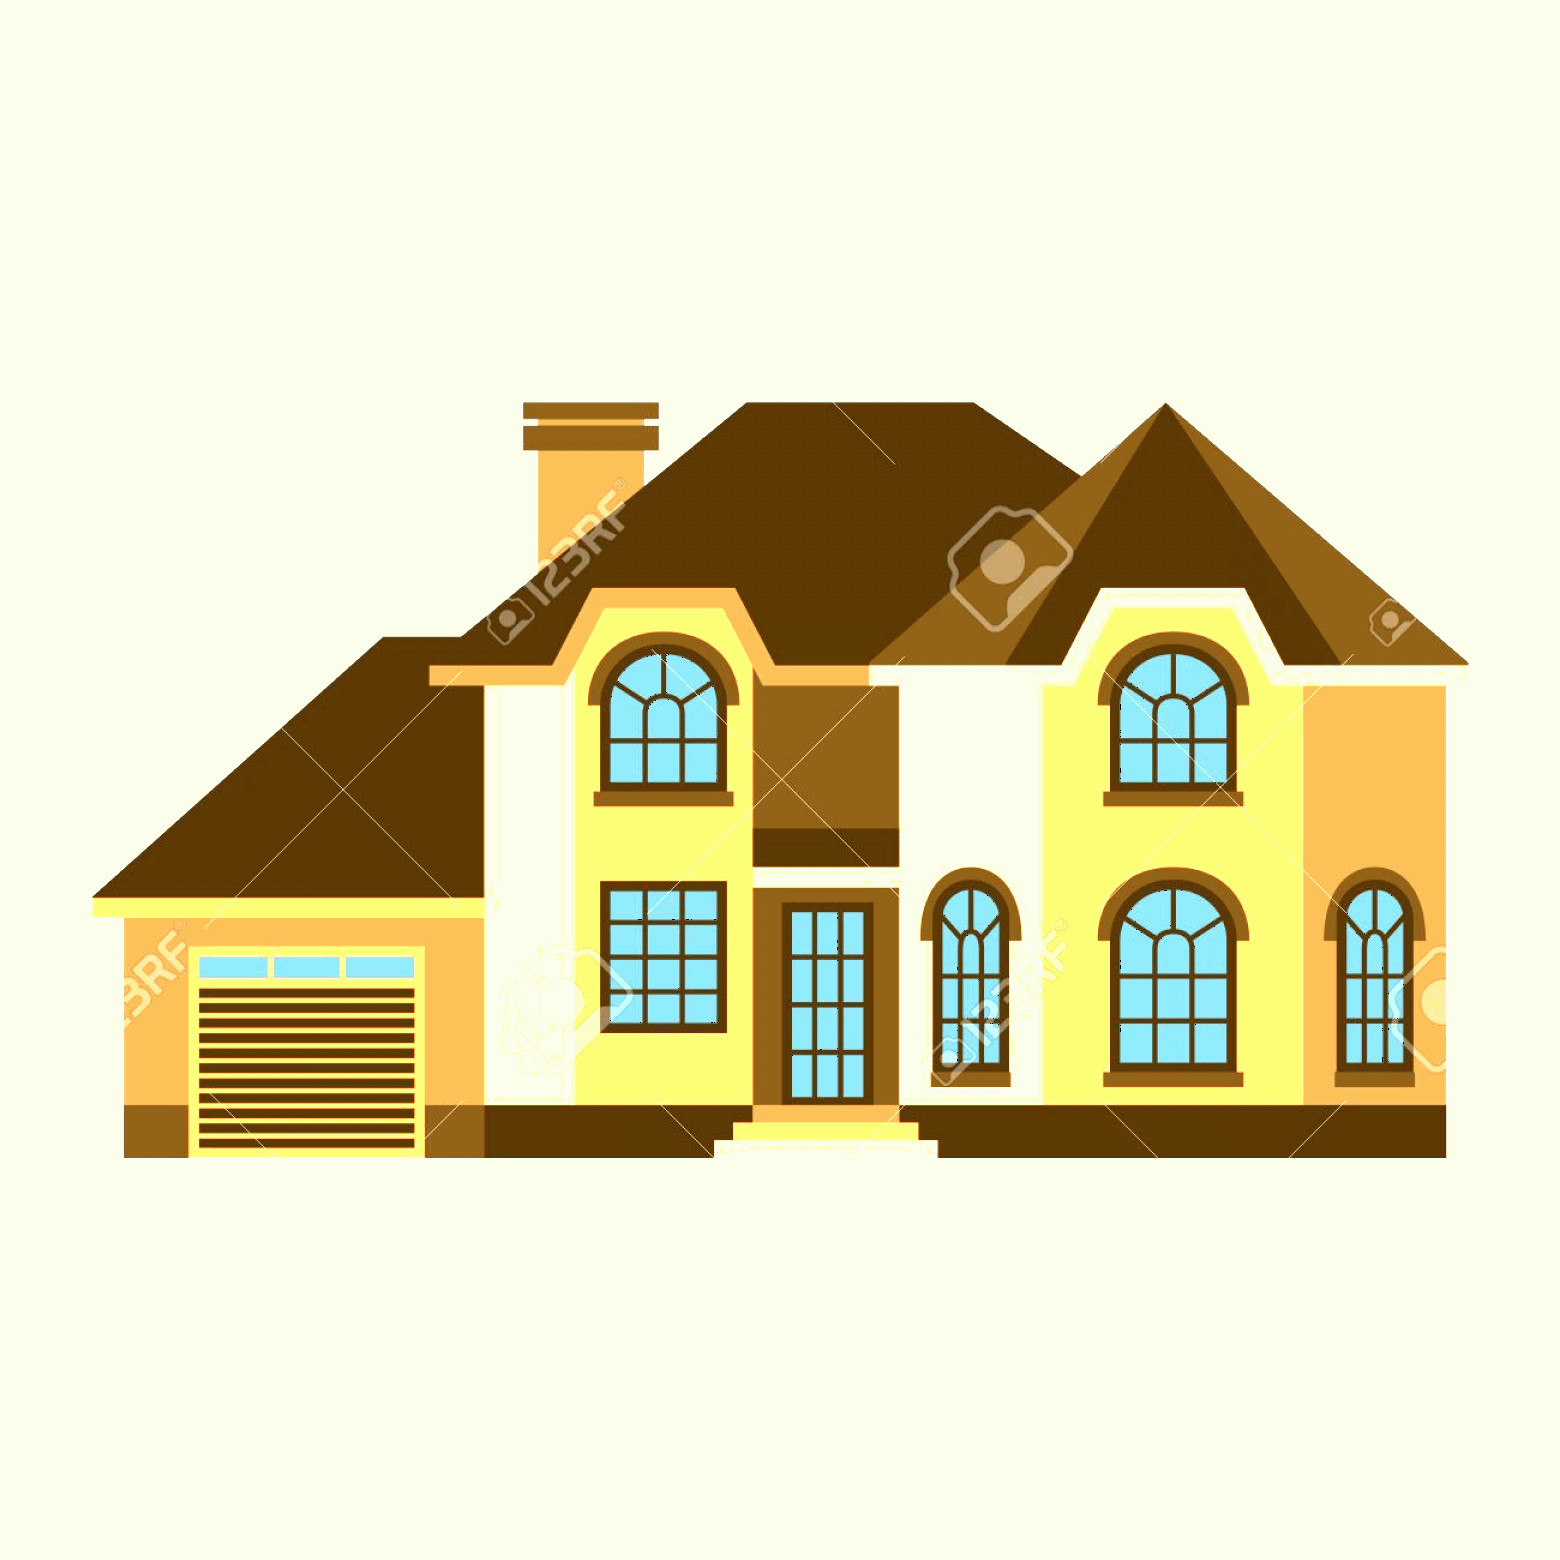 Flat Vector House: Photostock Vector House Front View Vector Illustration Houses Flat Style Modern Constructions Vector House Front Facad